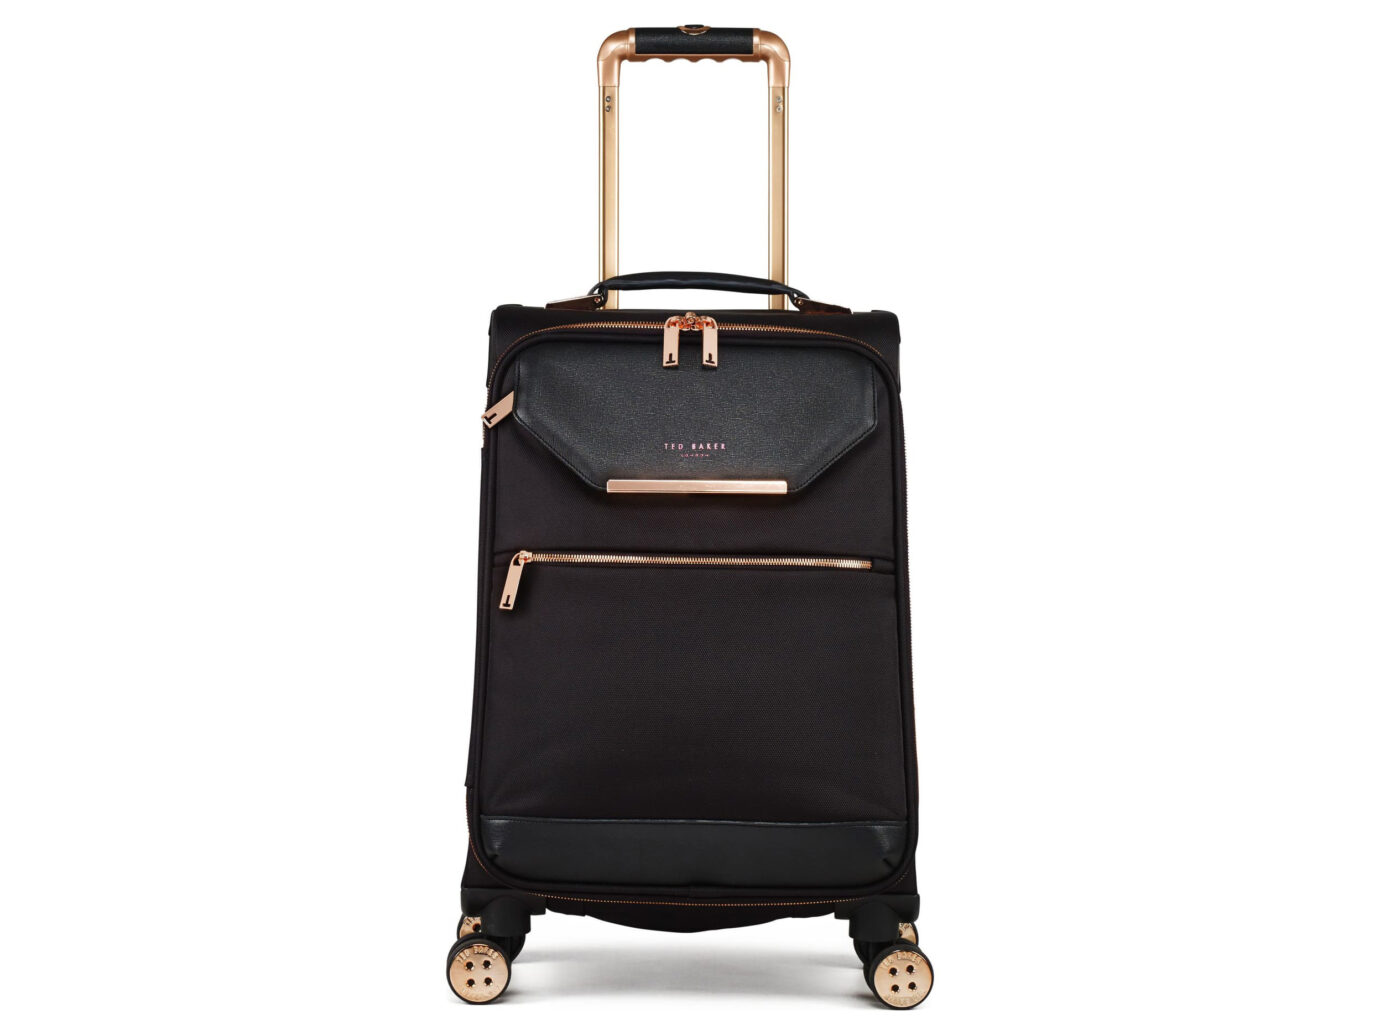 Ted Baker London 22-Inch Trolley Packing Case